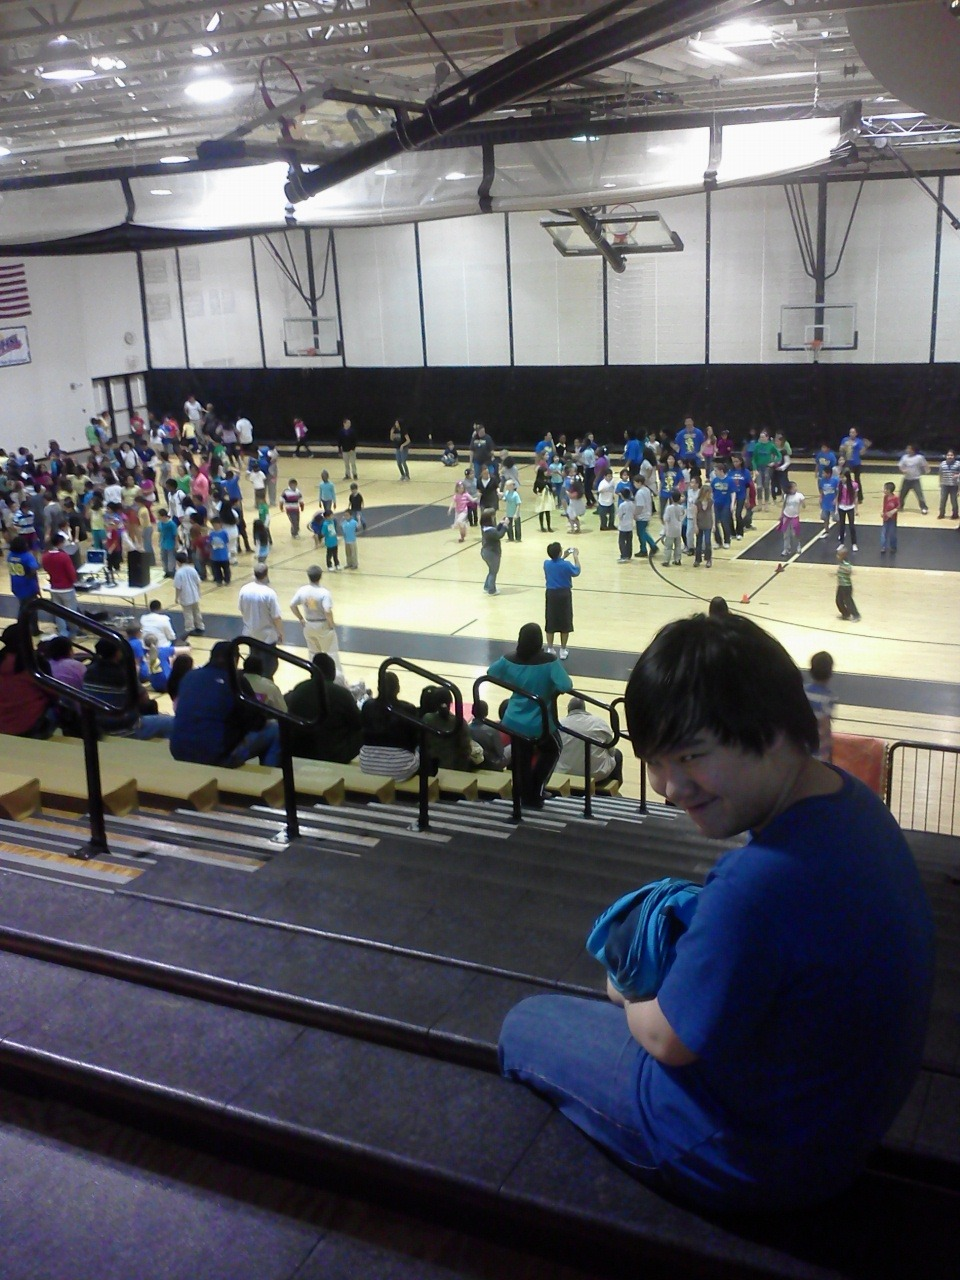 abadassbunny:  Sports night. A gym full of elementary kids.